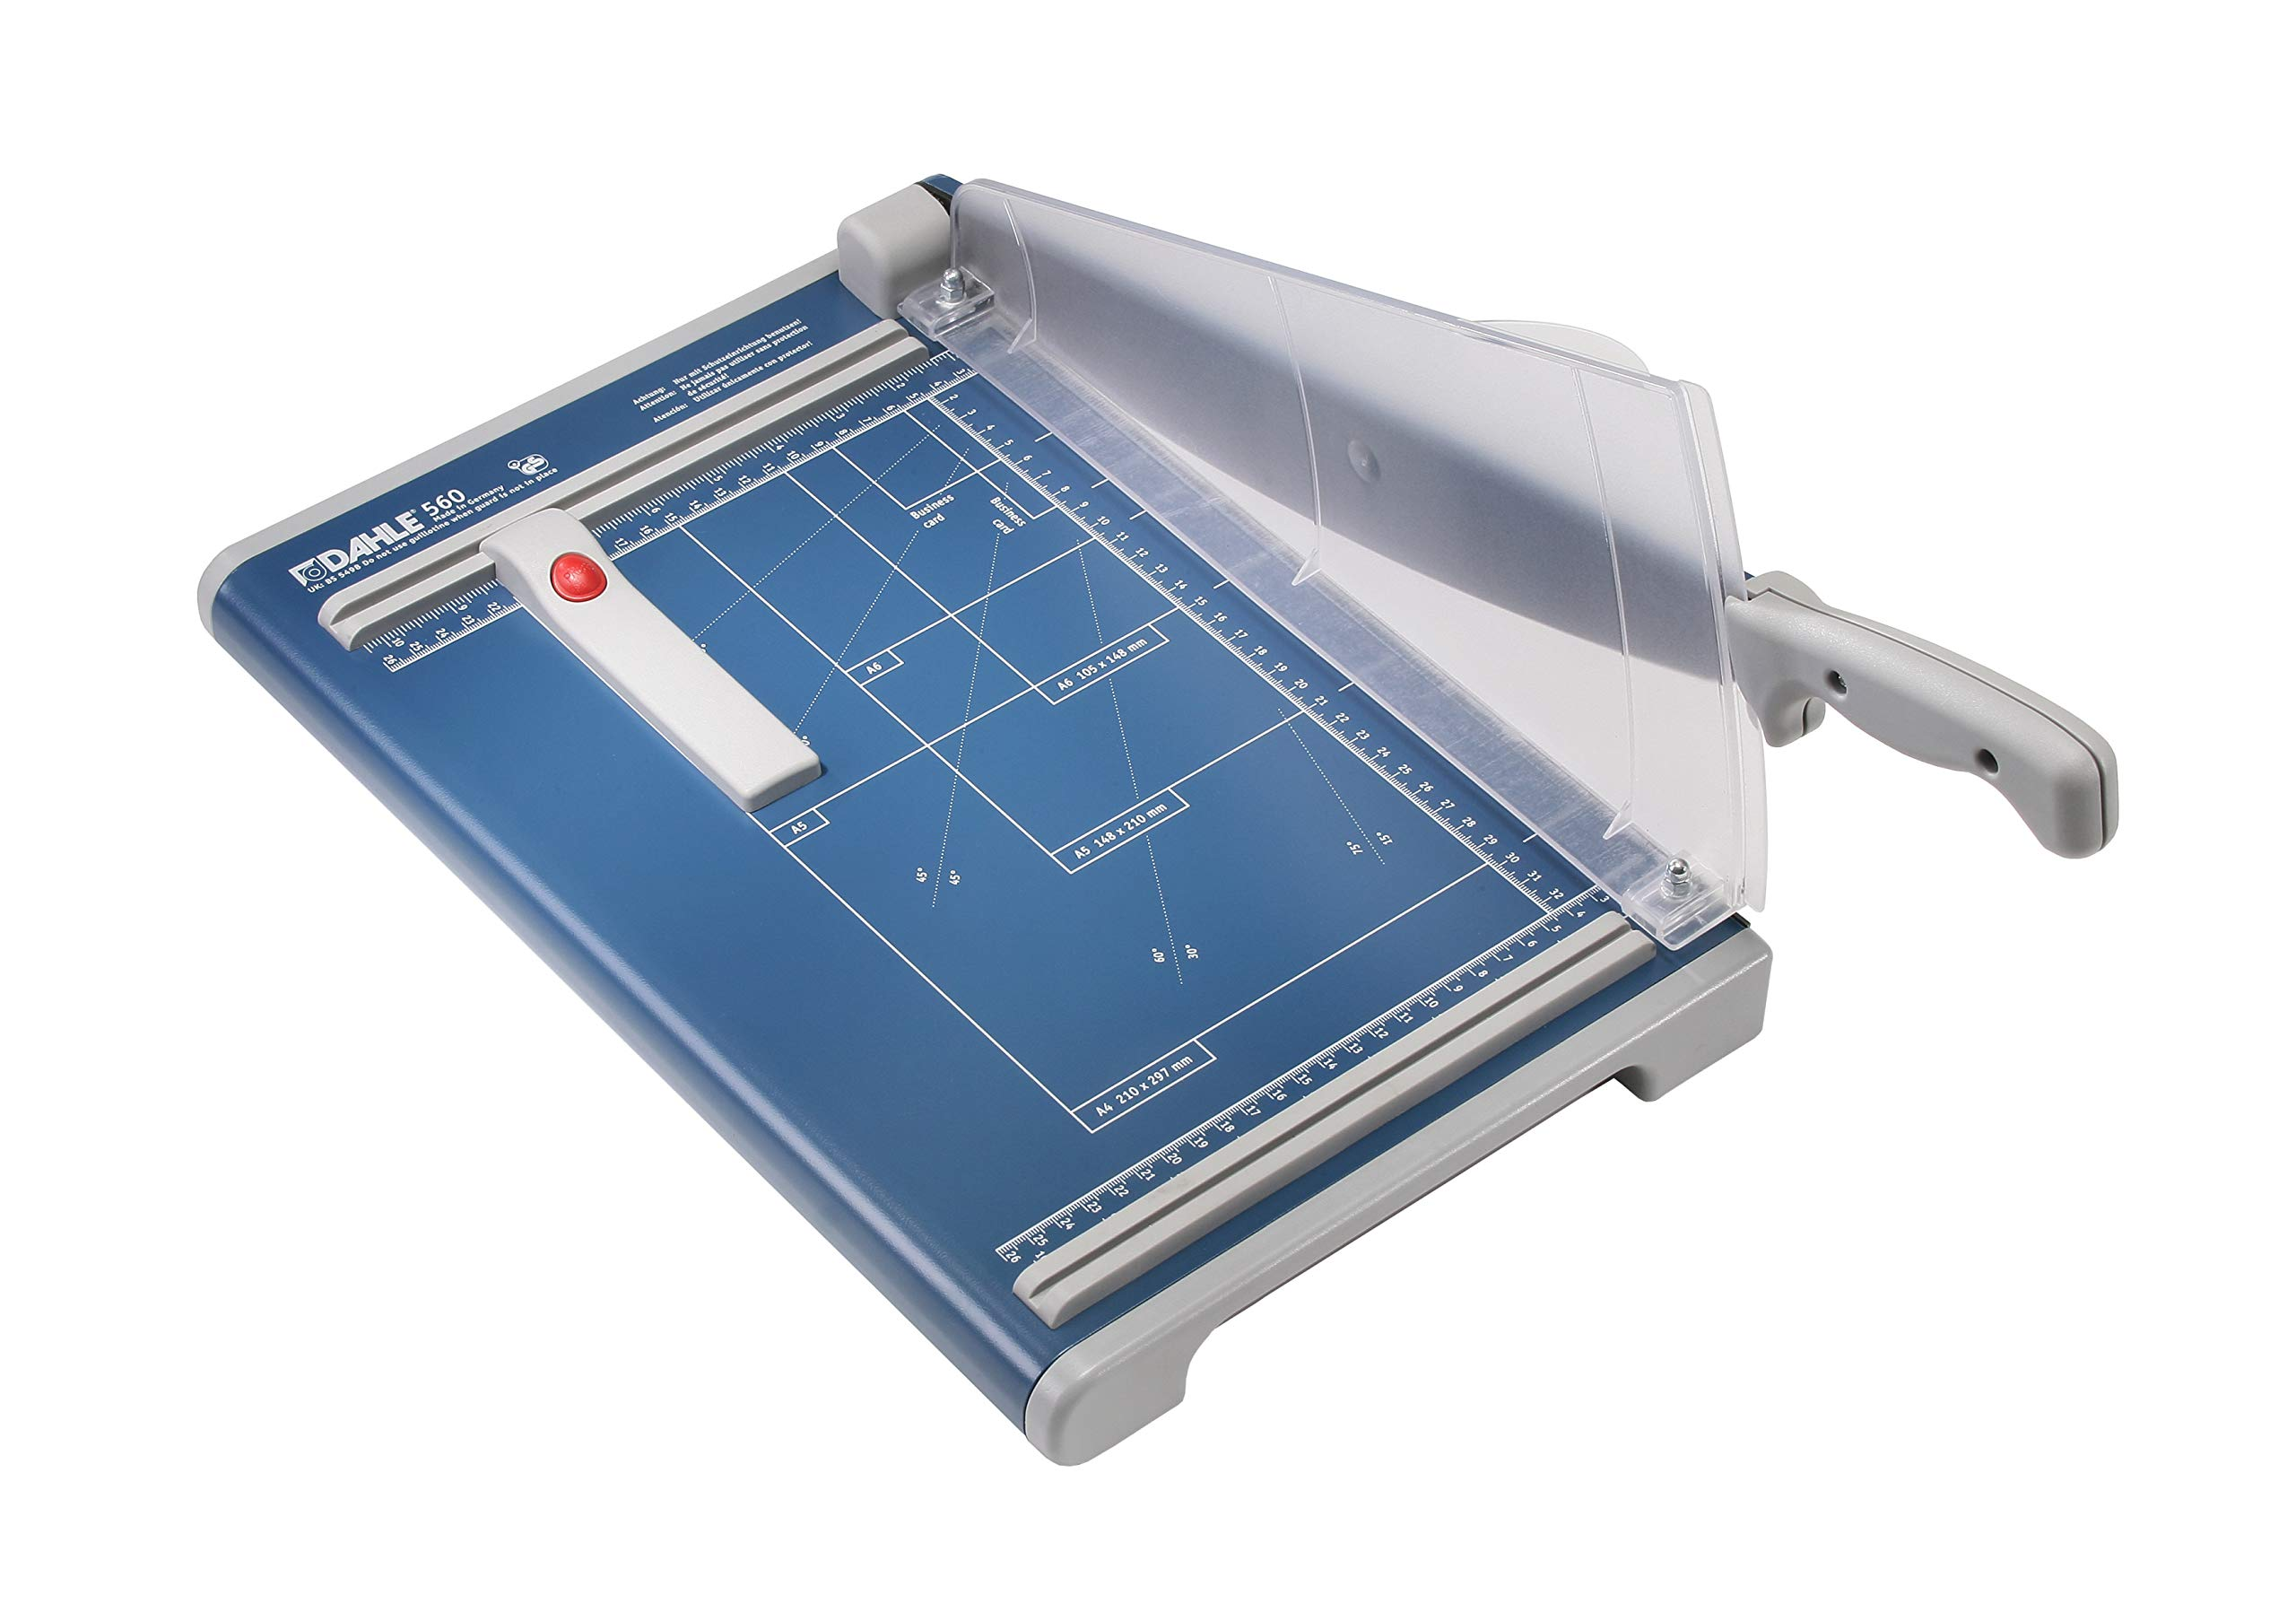 Dahle 560 Professional Guillotine Trimmer, 13-3/8'' Cut Length, 25 Sheet Capacity, Self-Sharpening, Safety Shield, German Engineered Cutter by Dahle